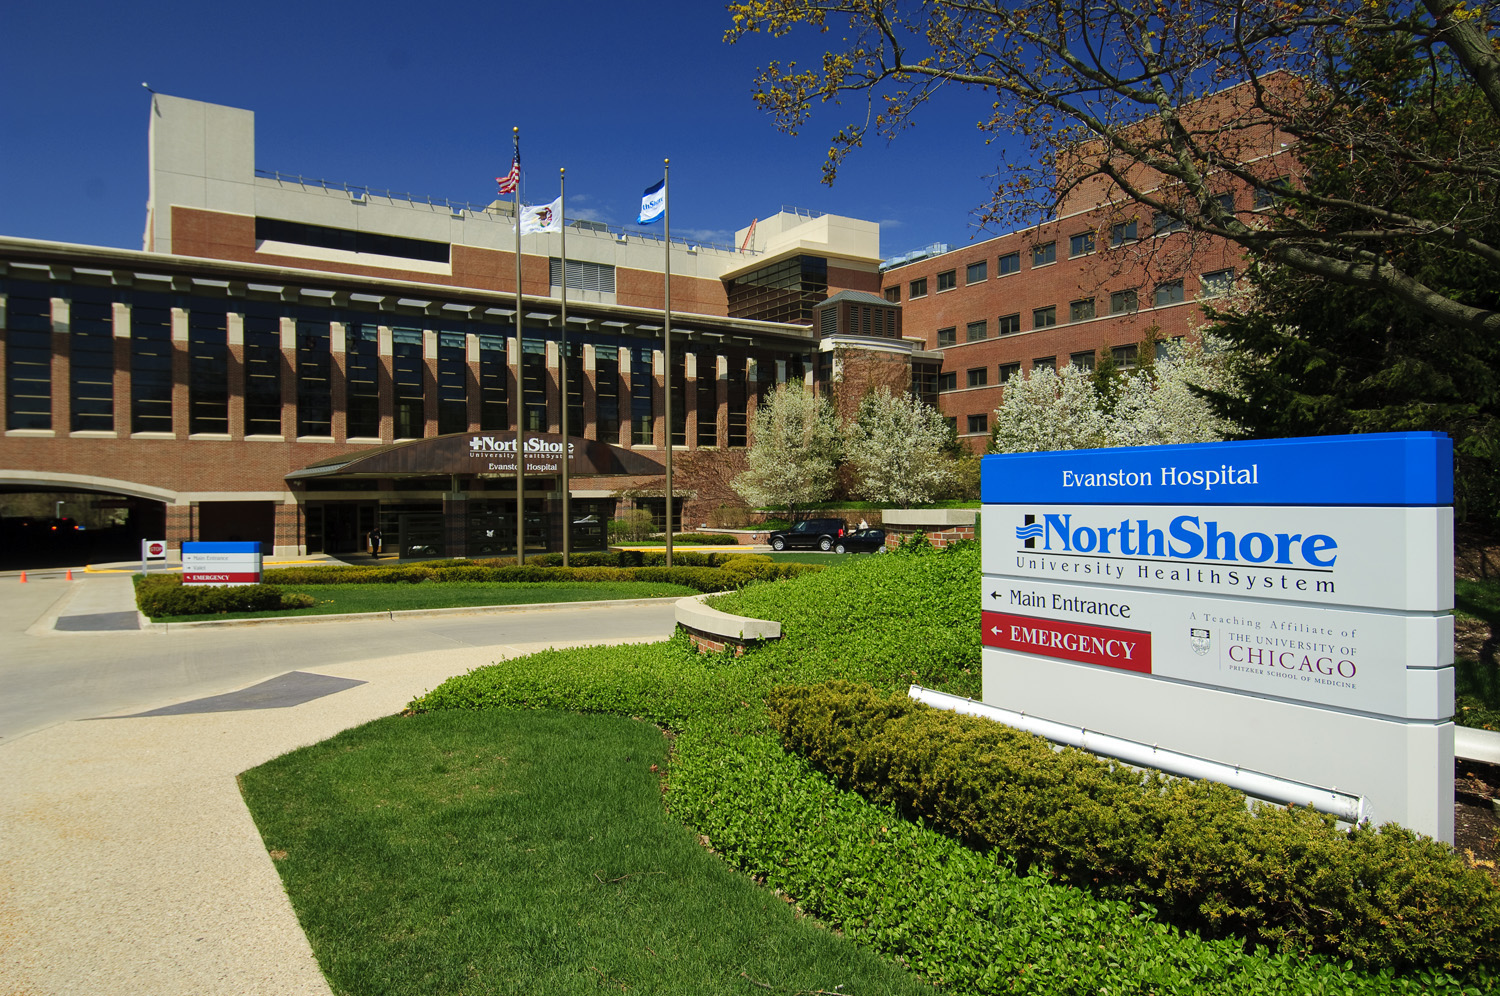 northshore-university-health-system-1